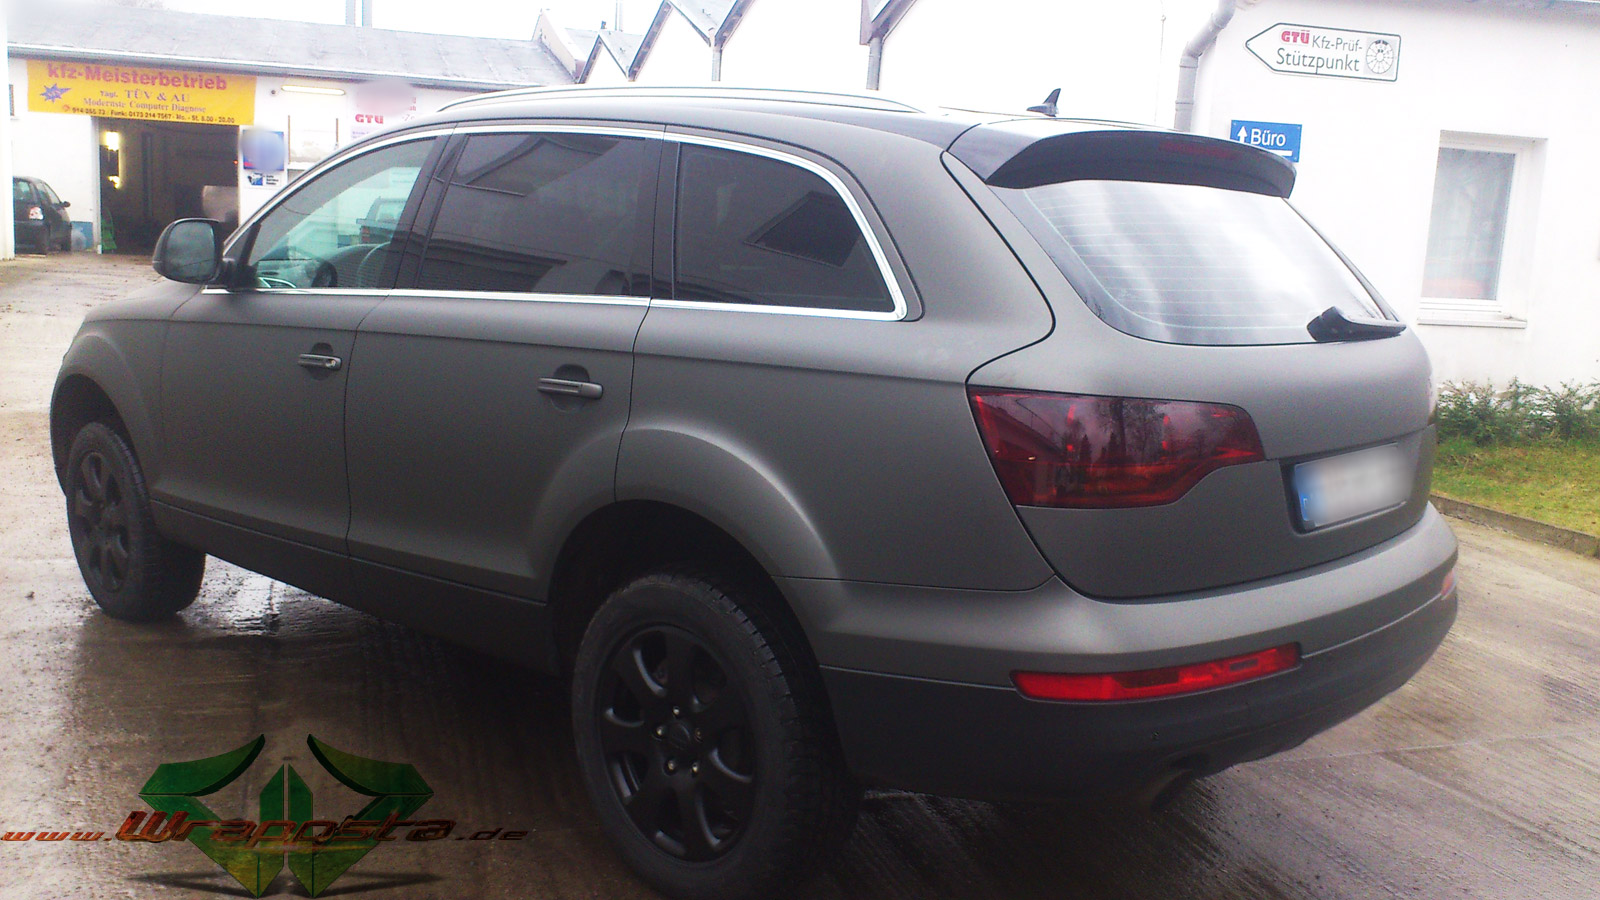 Autolack Anthrazit Metallic Matt Audi Q7 - Ultra Matt Anthrazit Metallic & Glanz Schwarz